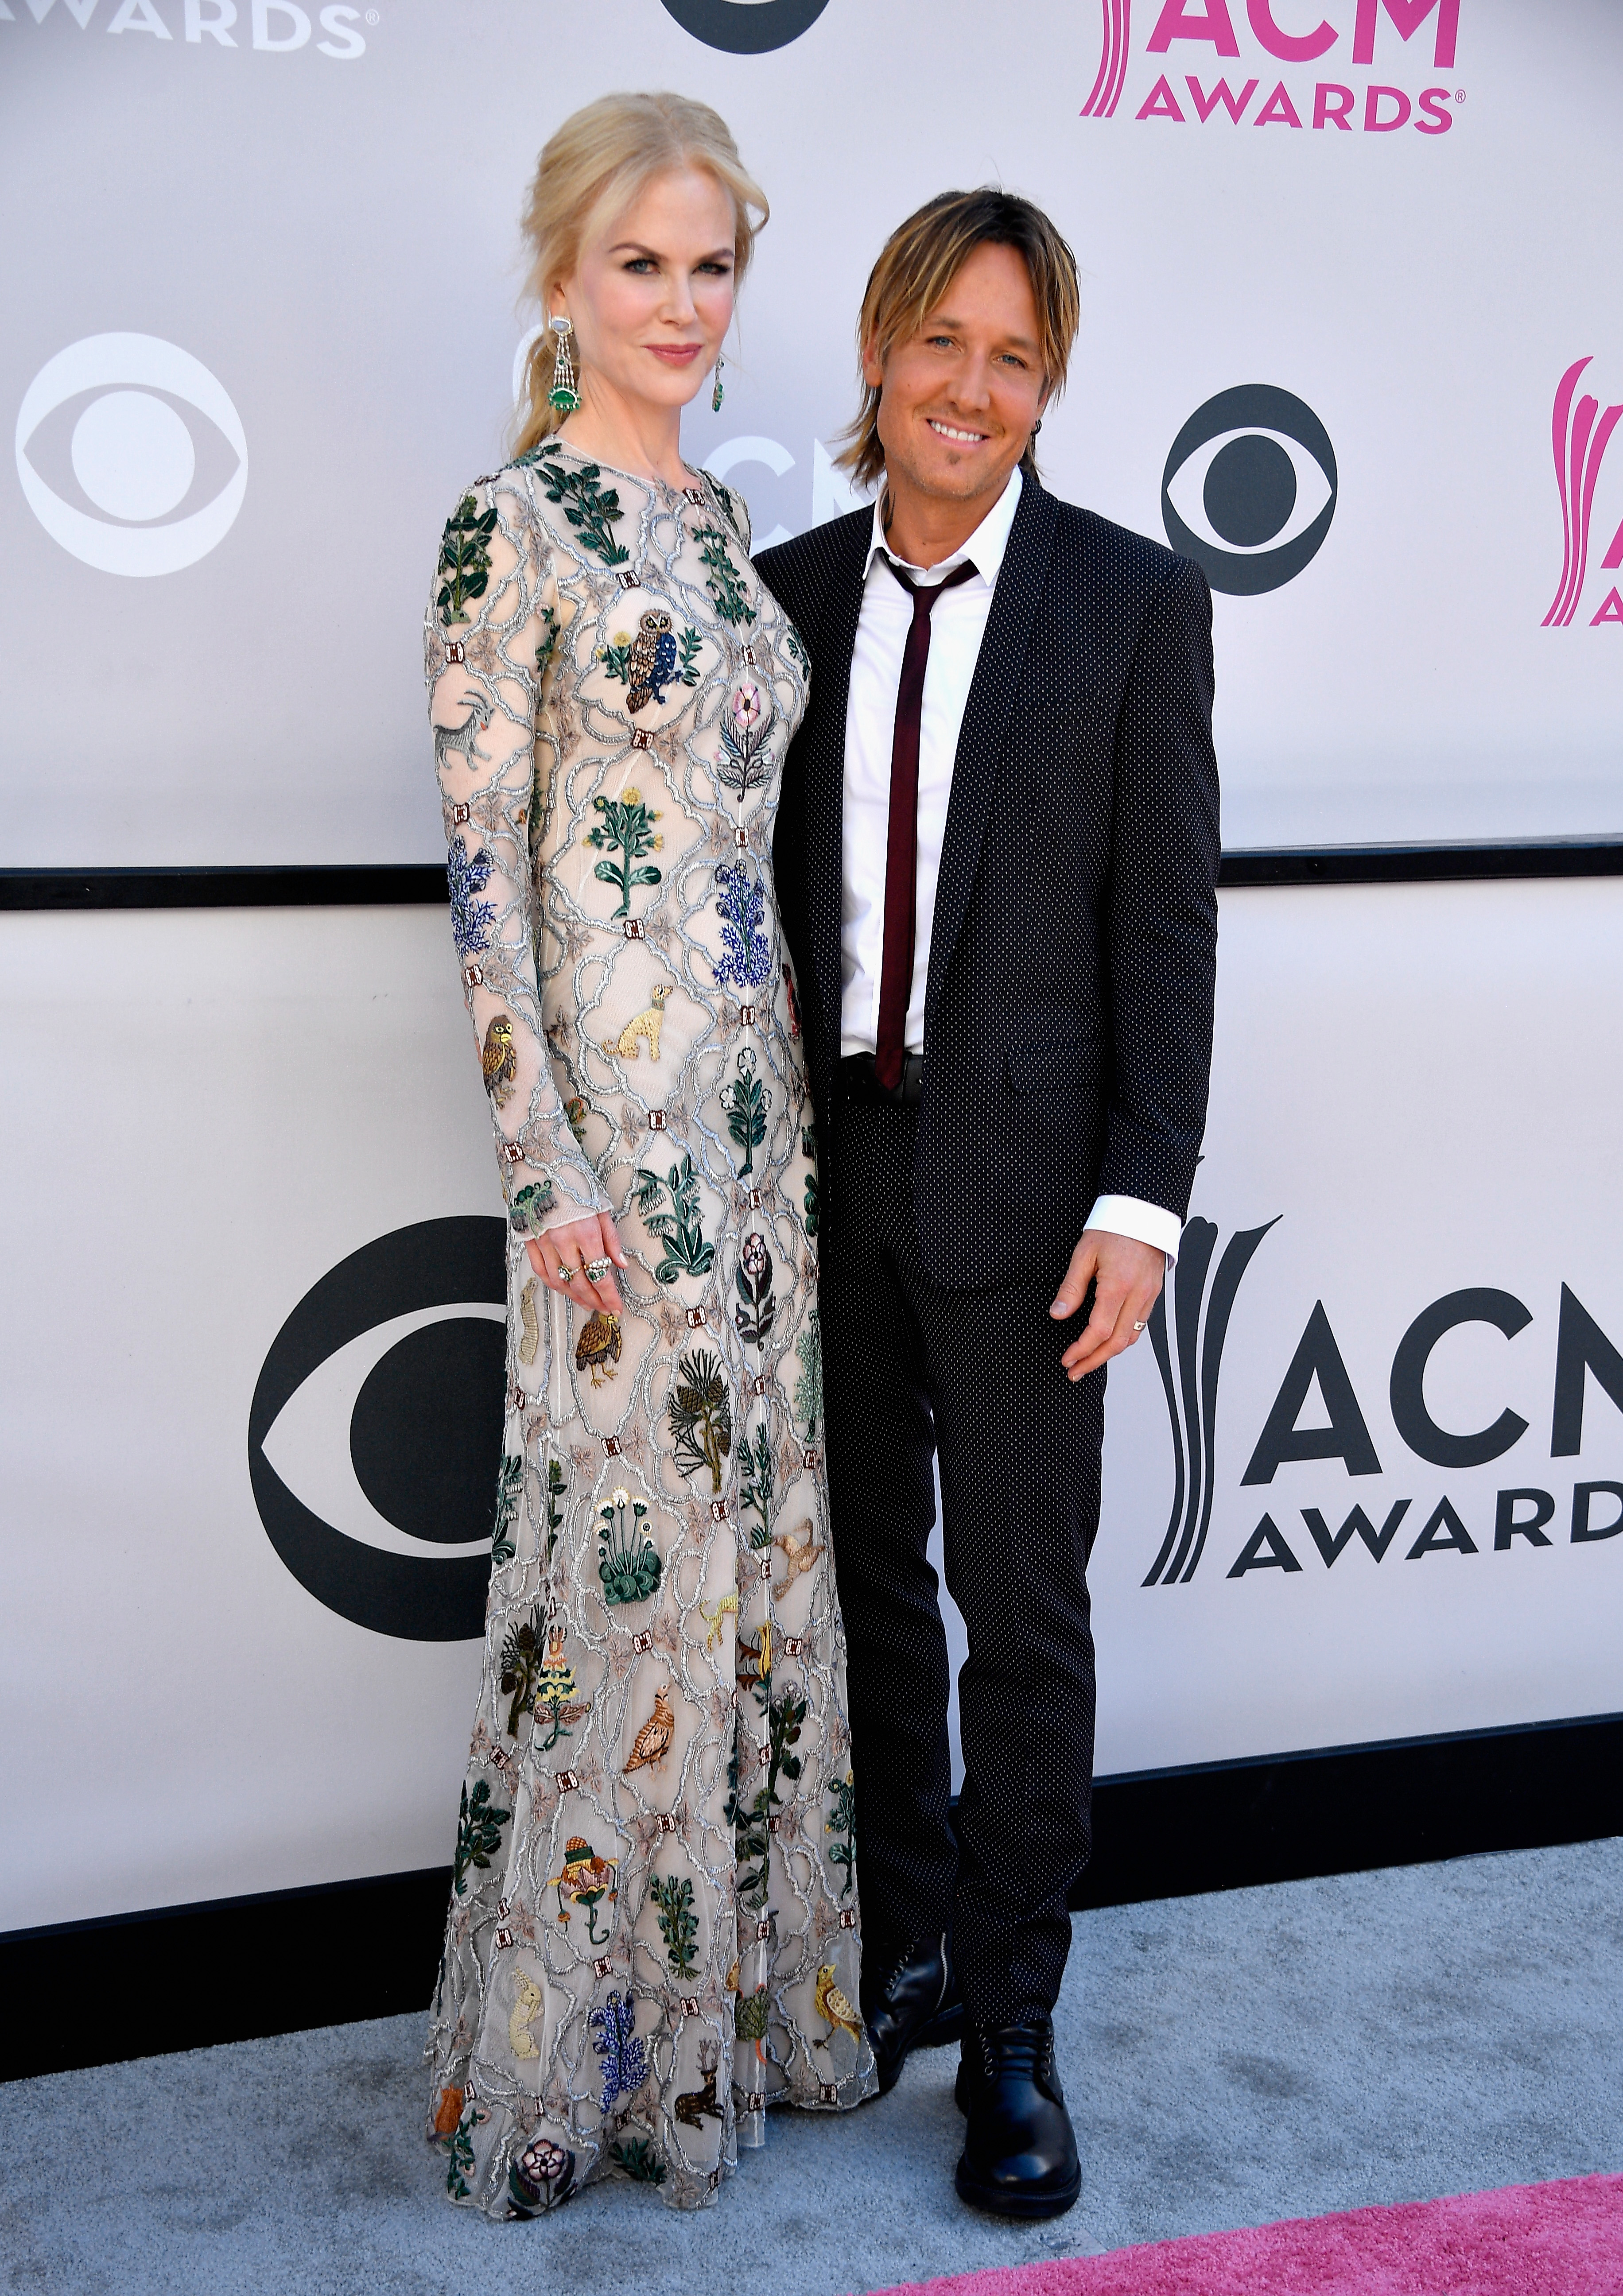 Nicole Kidman and Keith Urban; Photo by Frazer Harrison/Getty Images